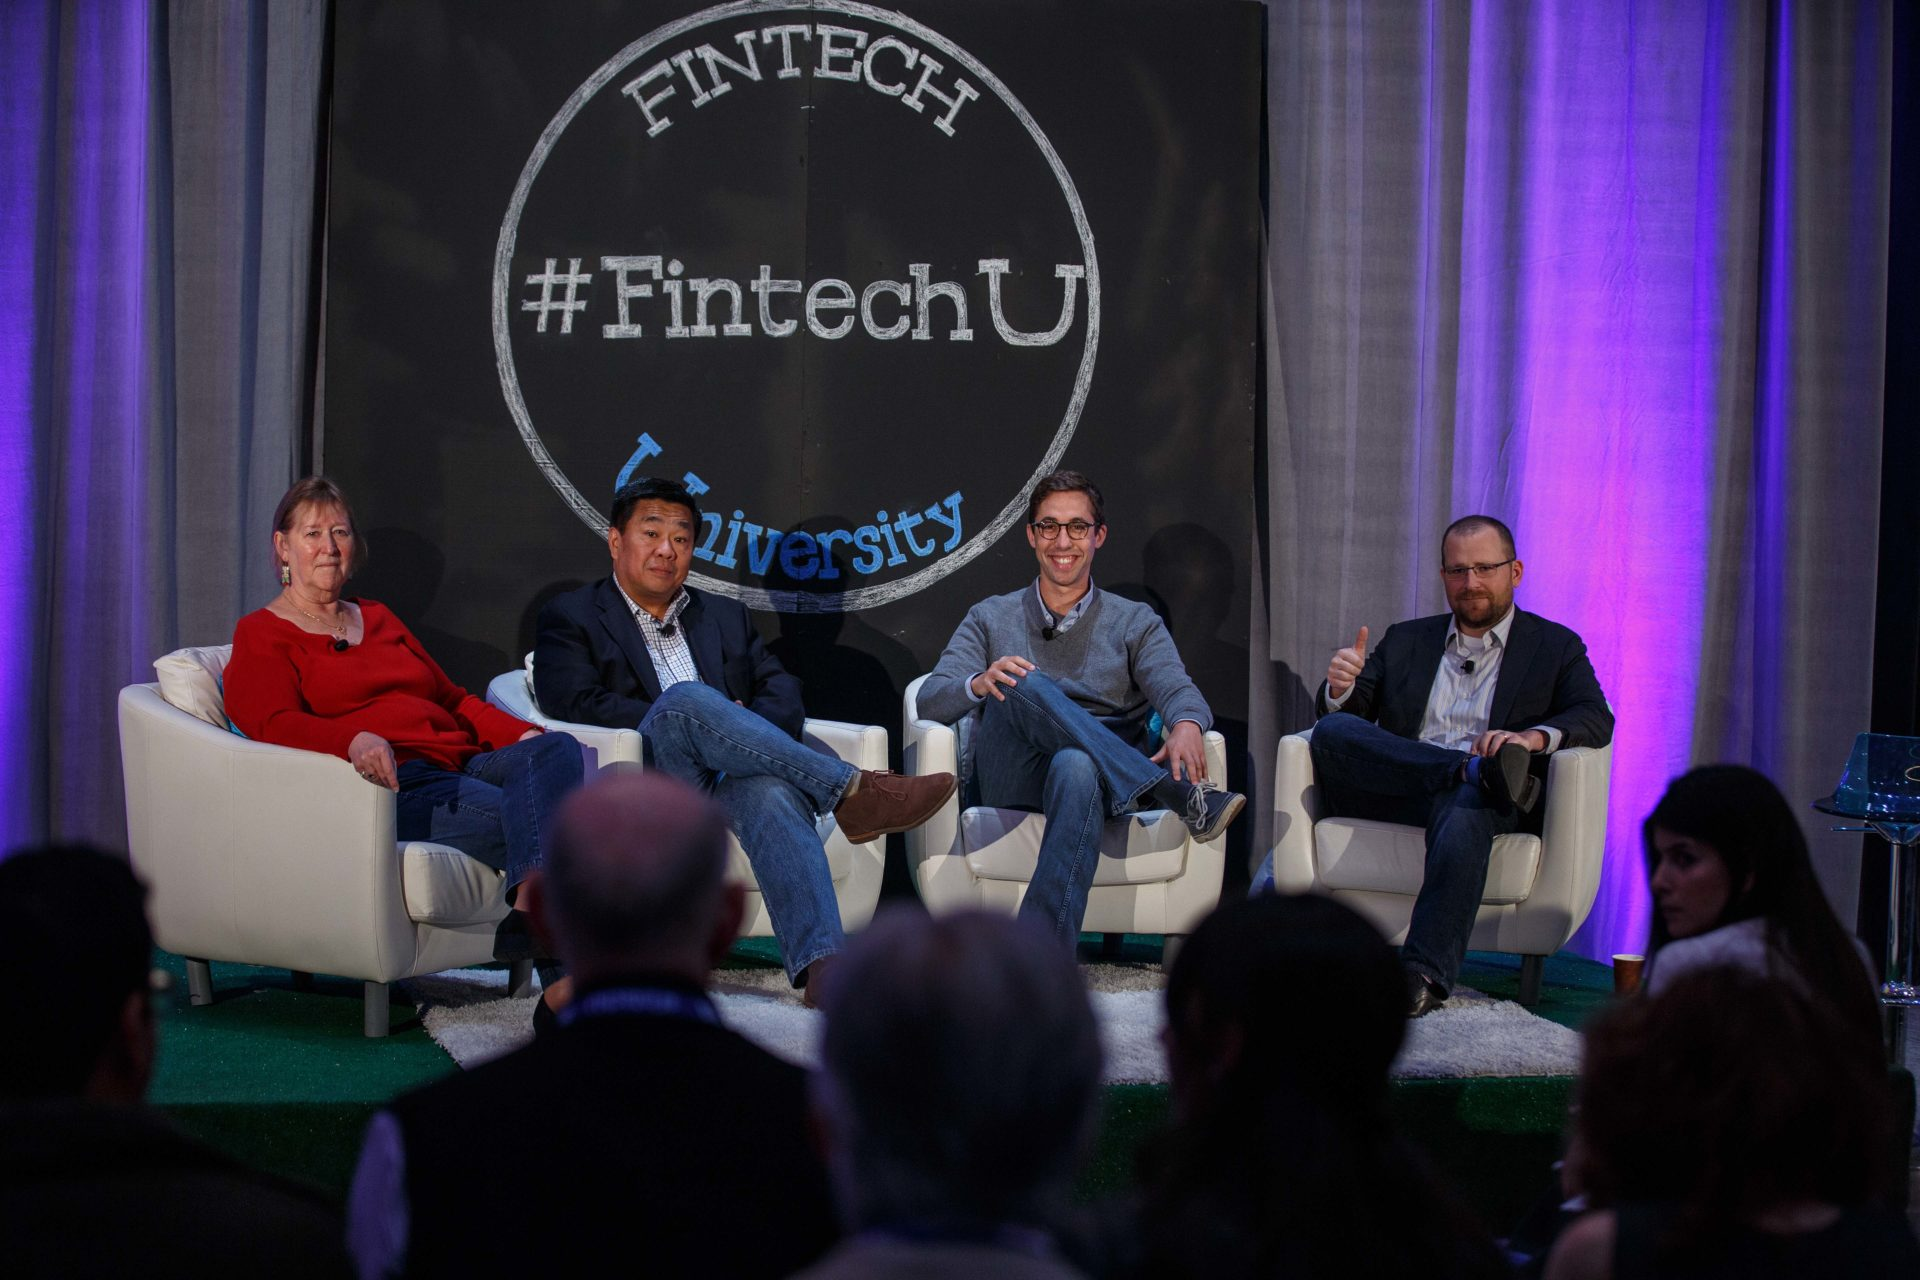 A photo of Fintech University's payments panel.